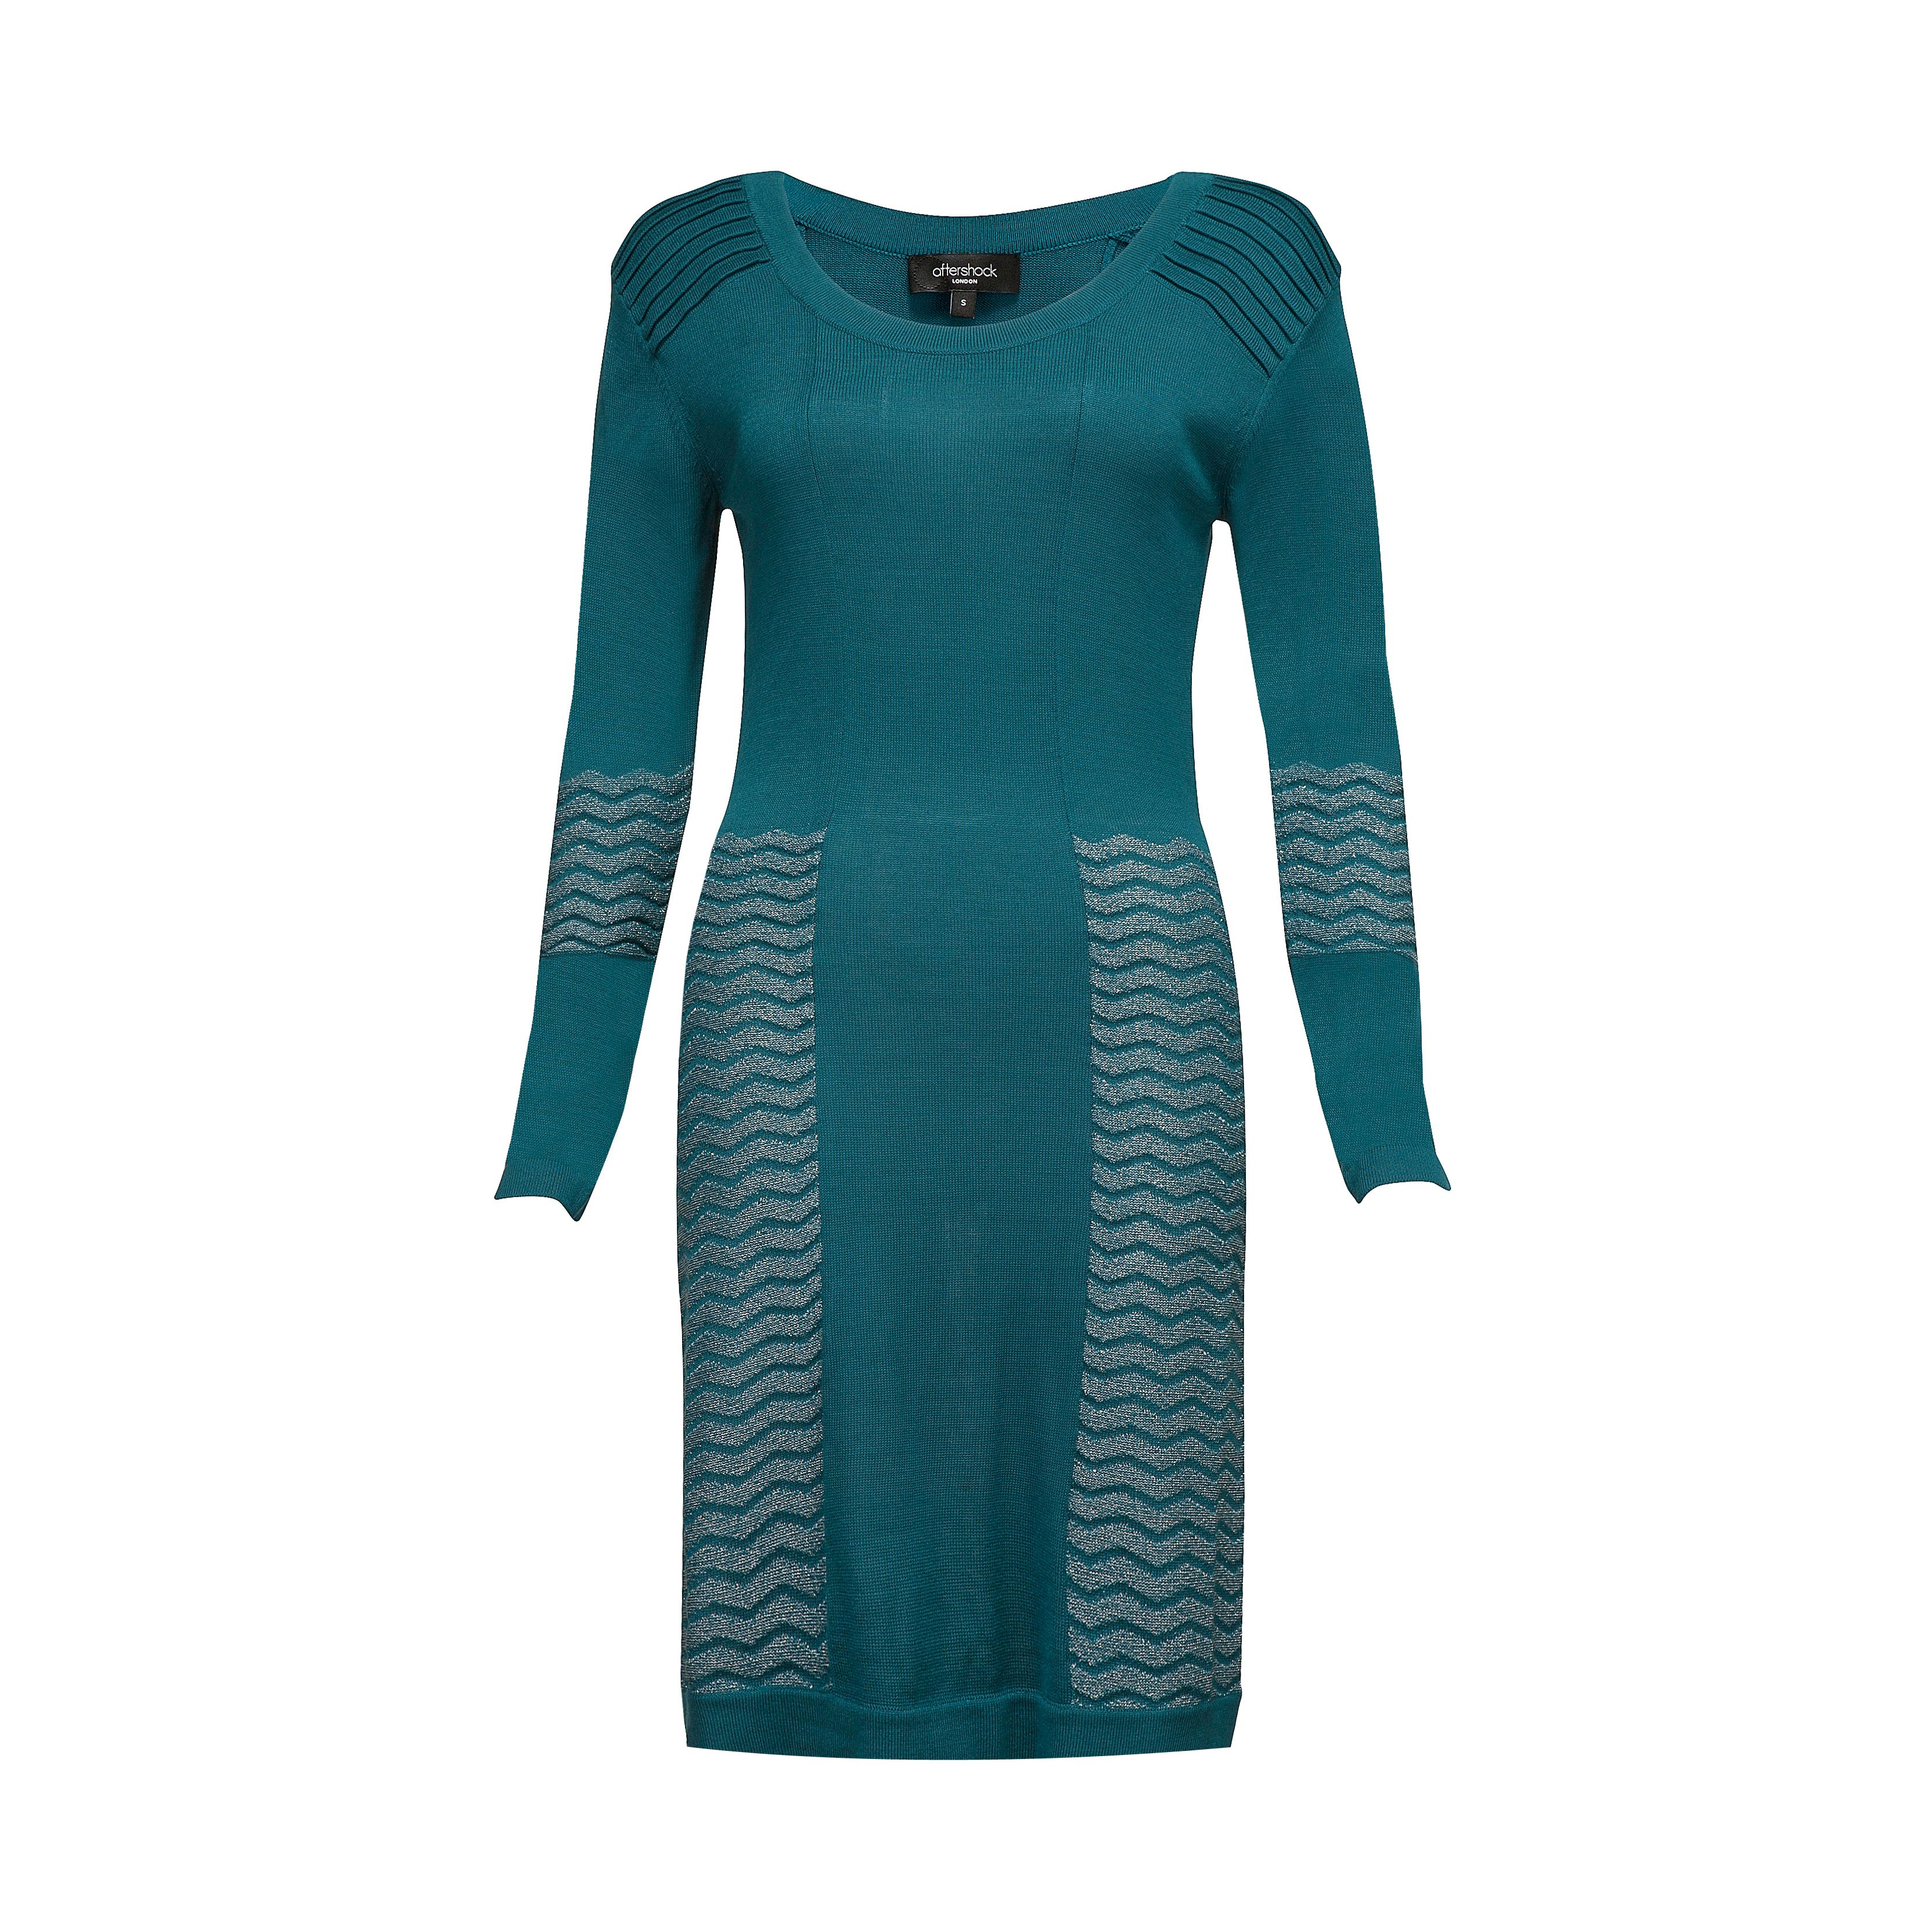 Thiesa sweater dress